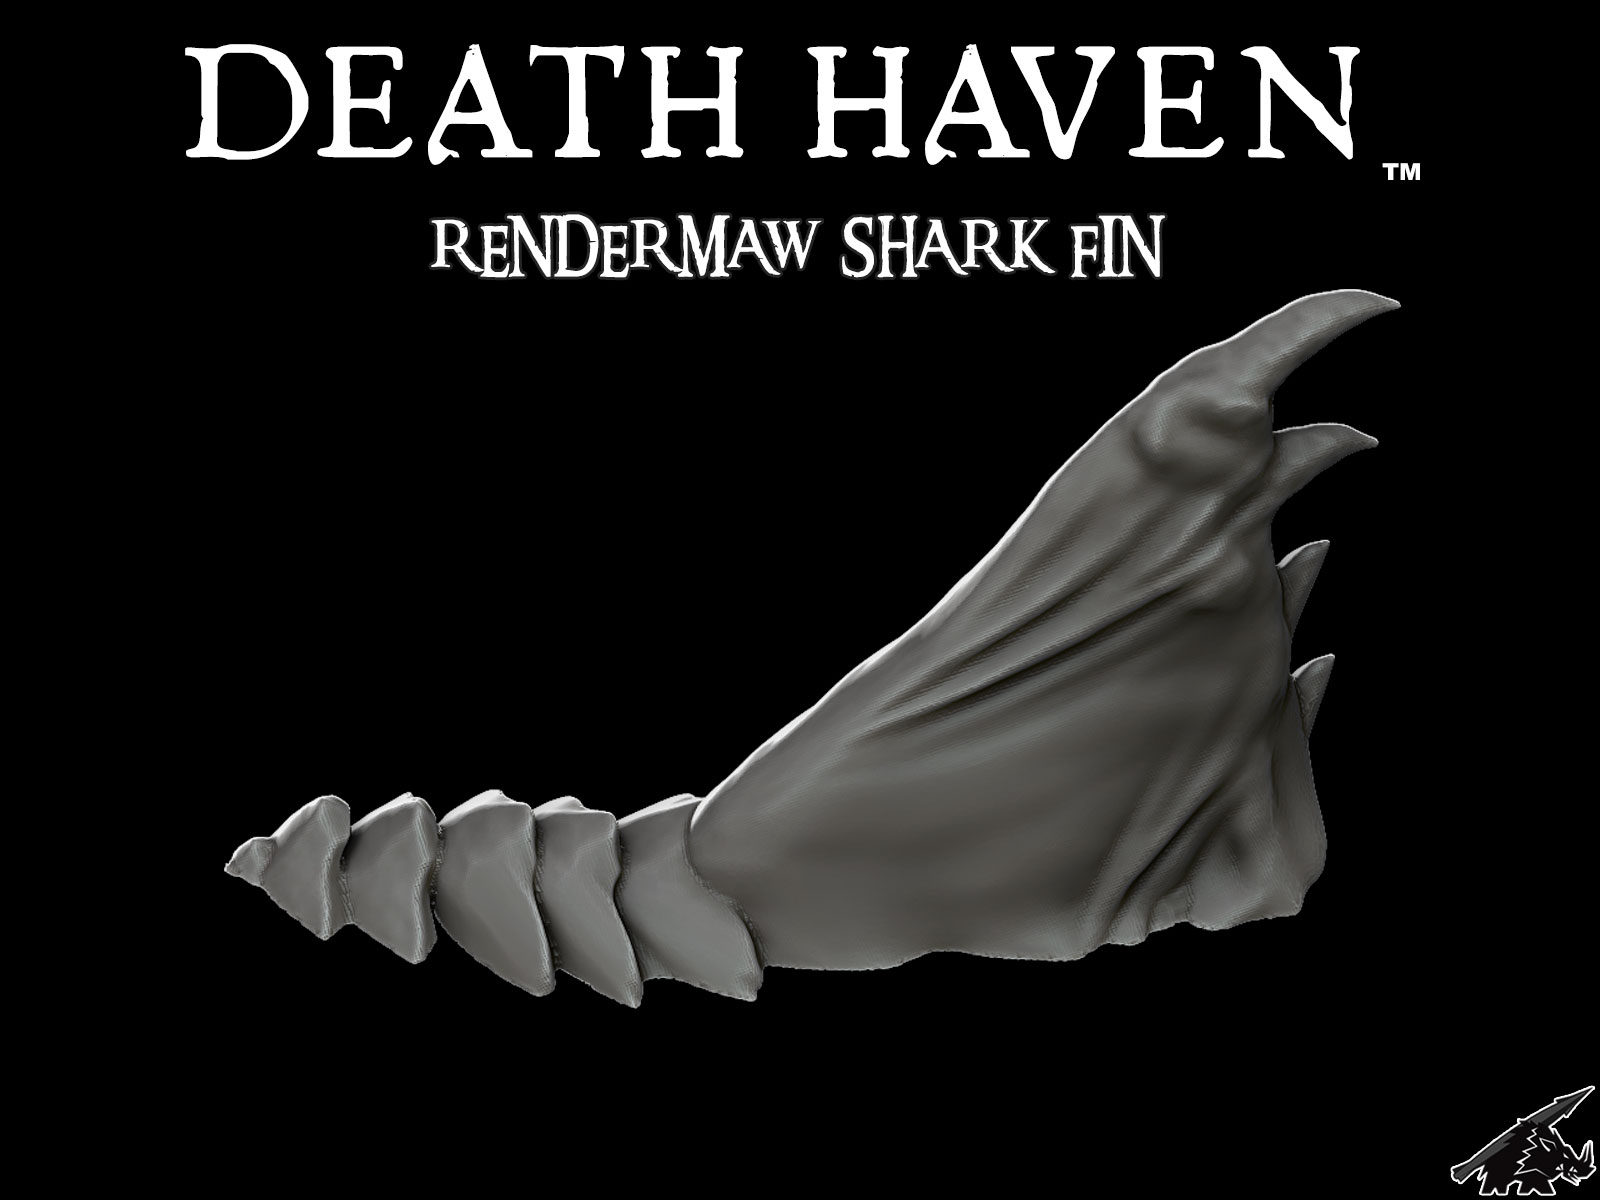 DEATH HAVEN RenderMaw Shark Fin (JOIN the PATREON)